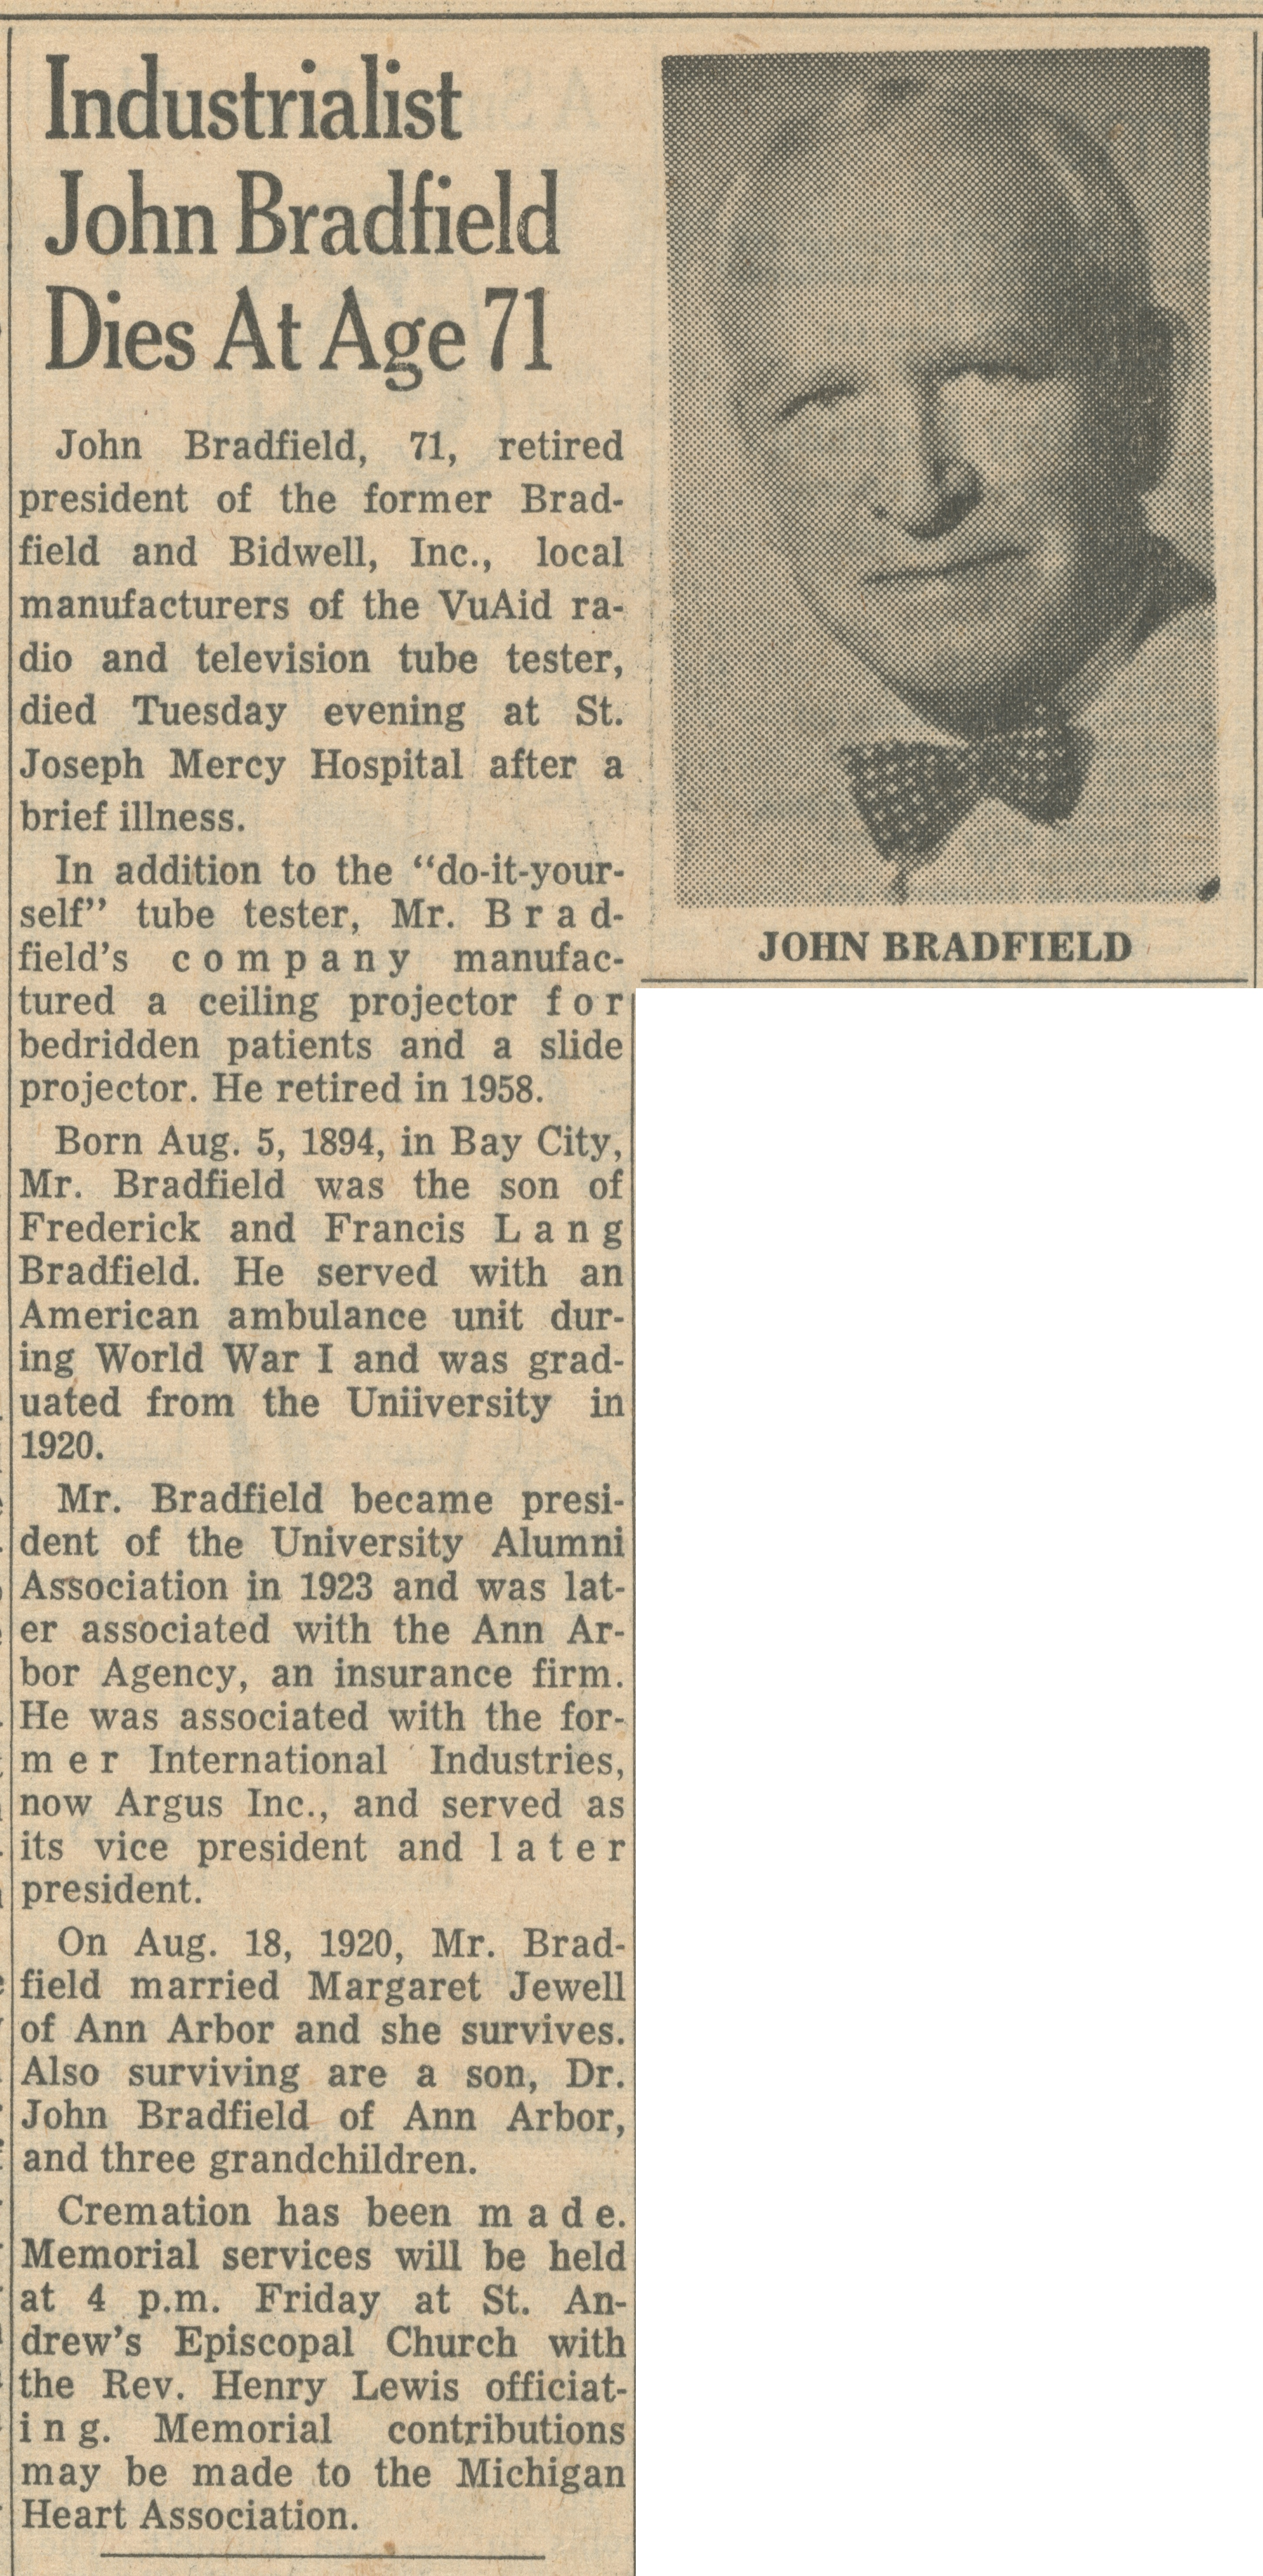 Industrialist John Bradfield Dies At Age 71 image